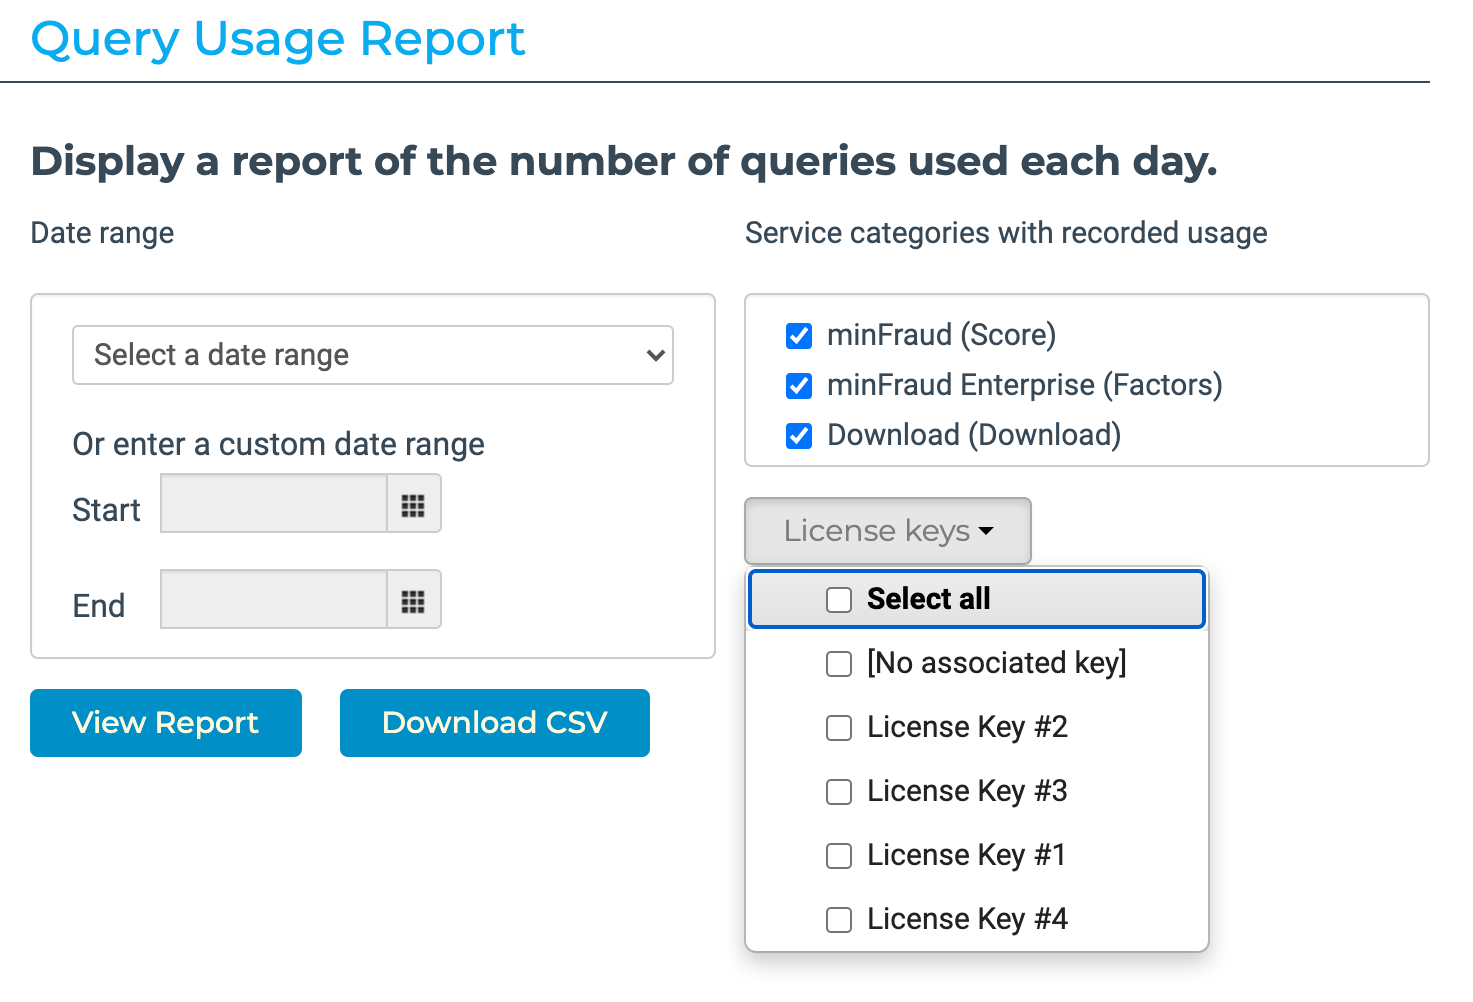 You can filter your usage reports by your MaxMind License Key.